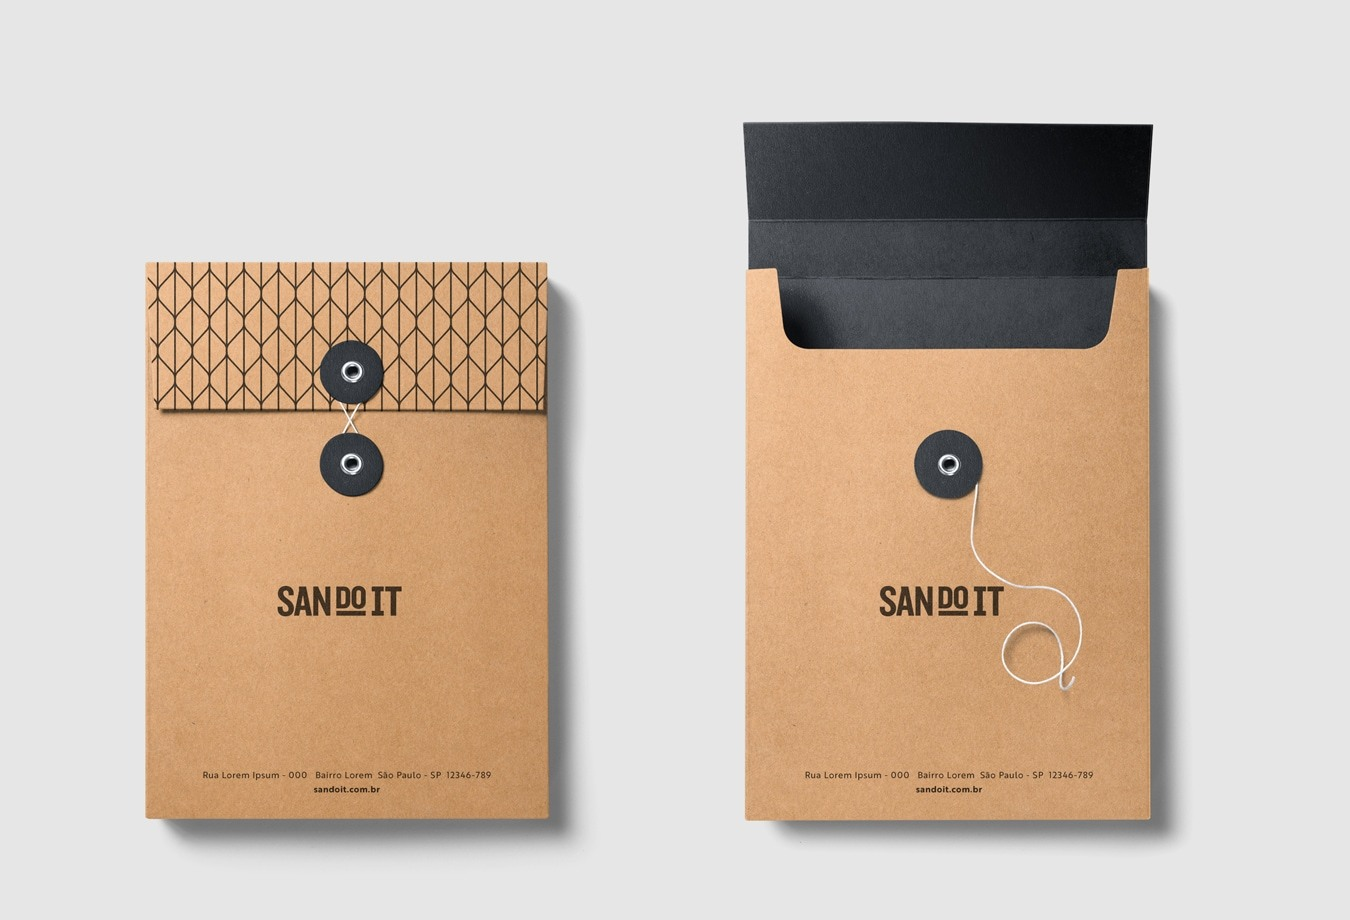 05-sandoit-visualidentity